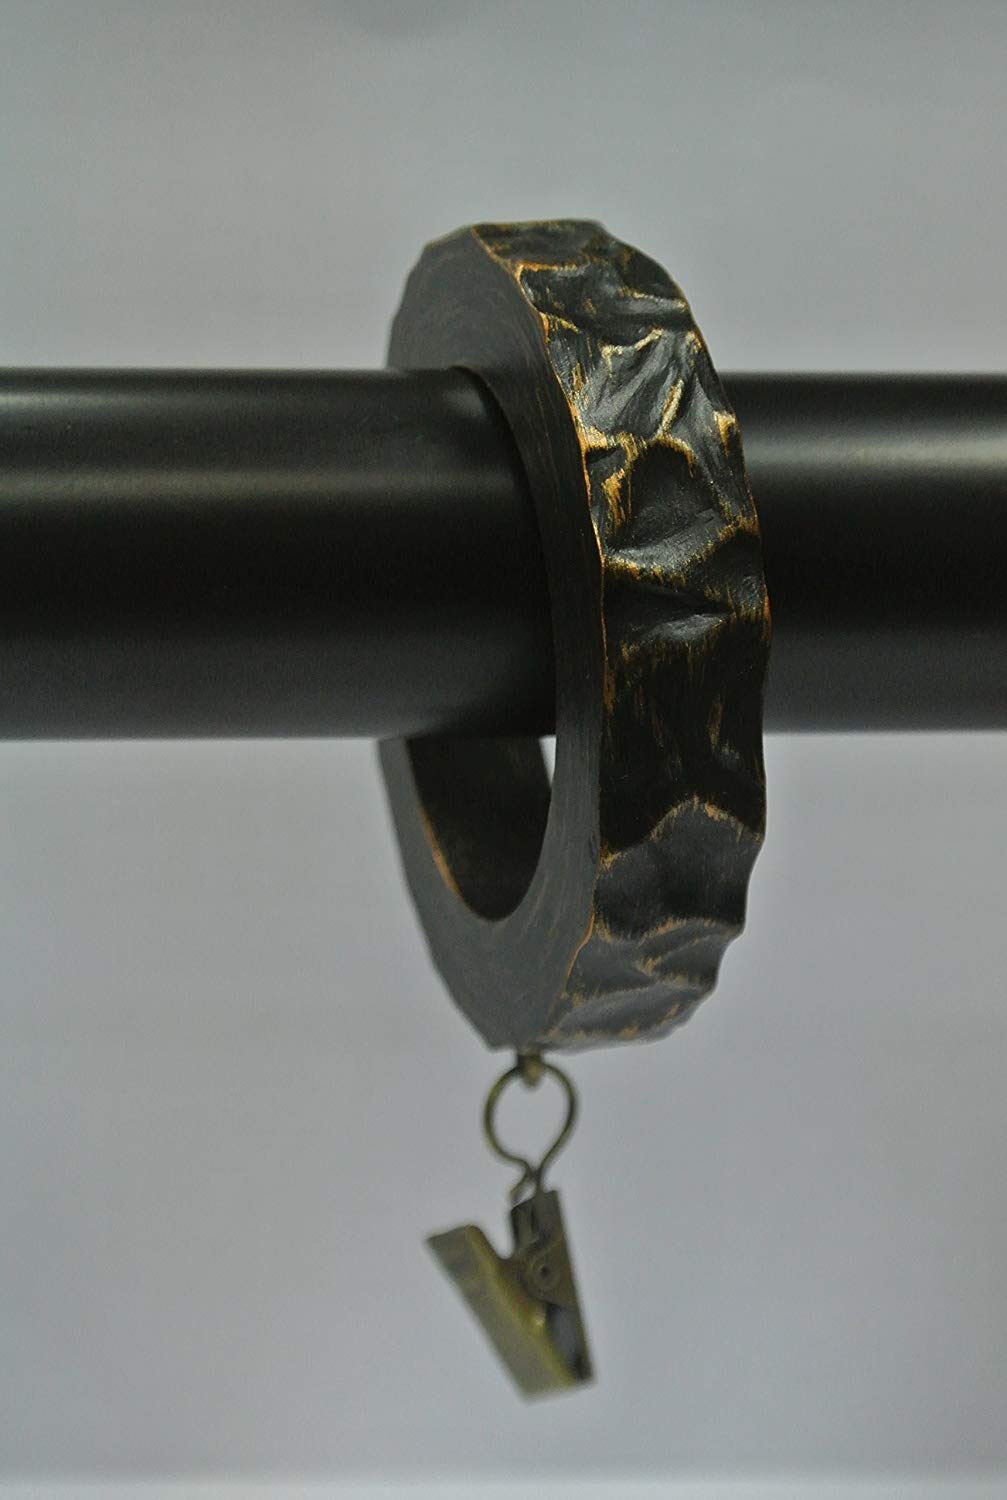 Urbanest Set of 7 Hammered Designer Curtain Rings in Burnt Gold Finish